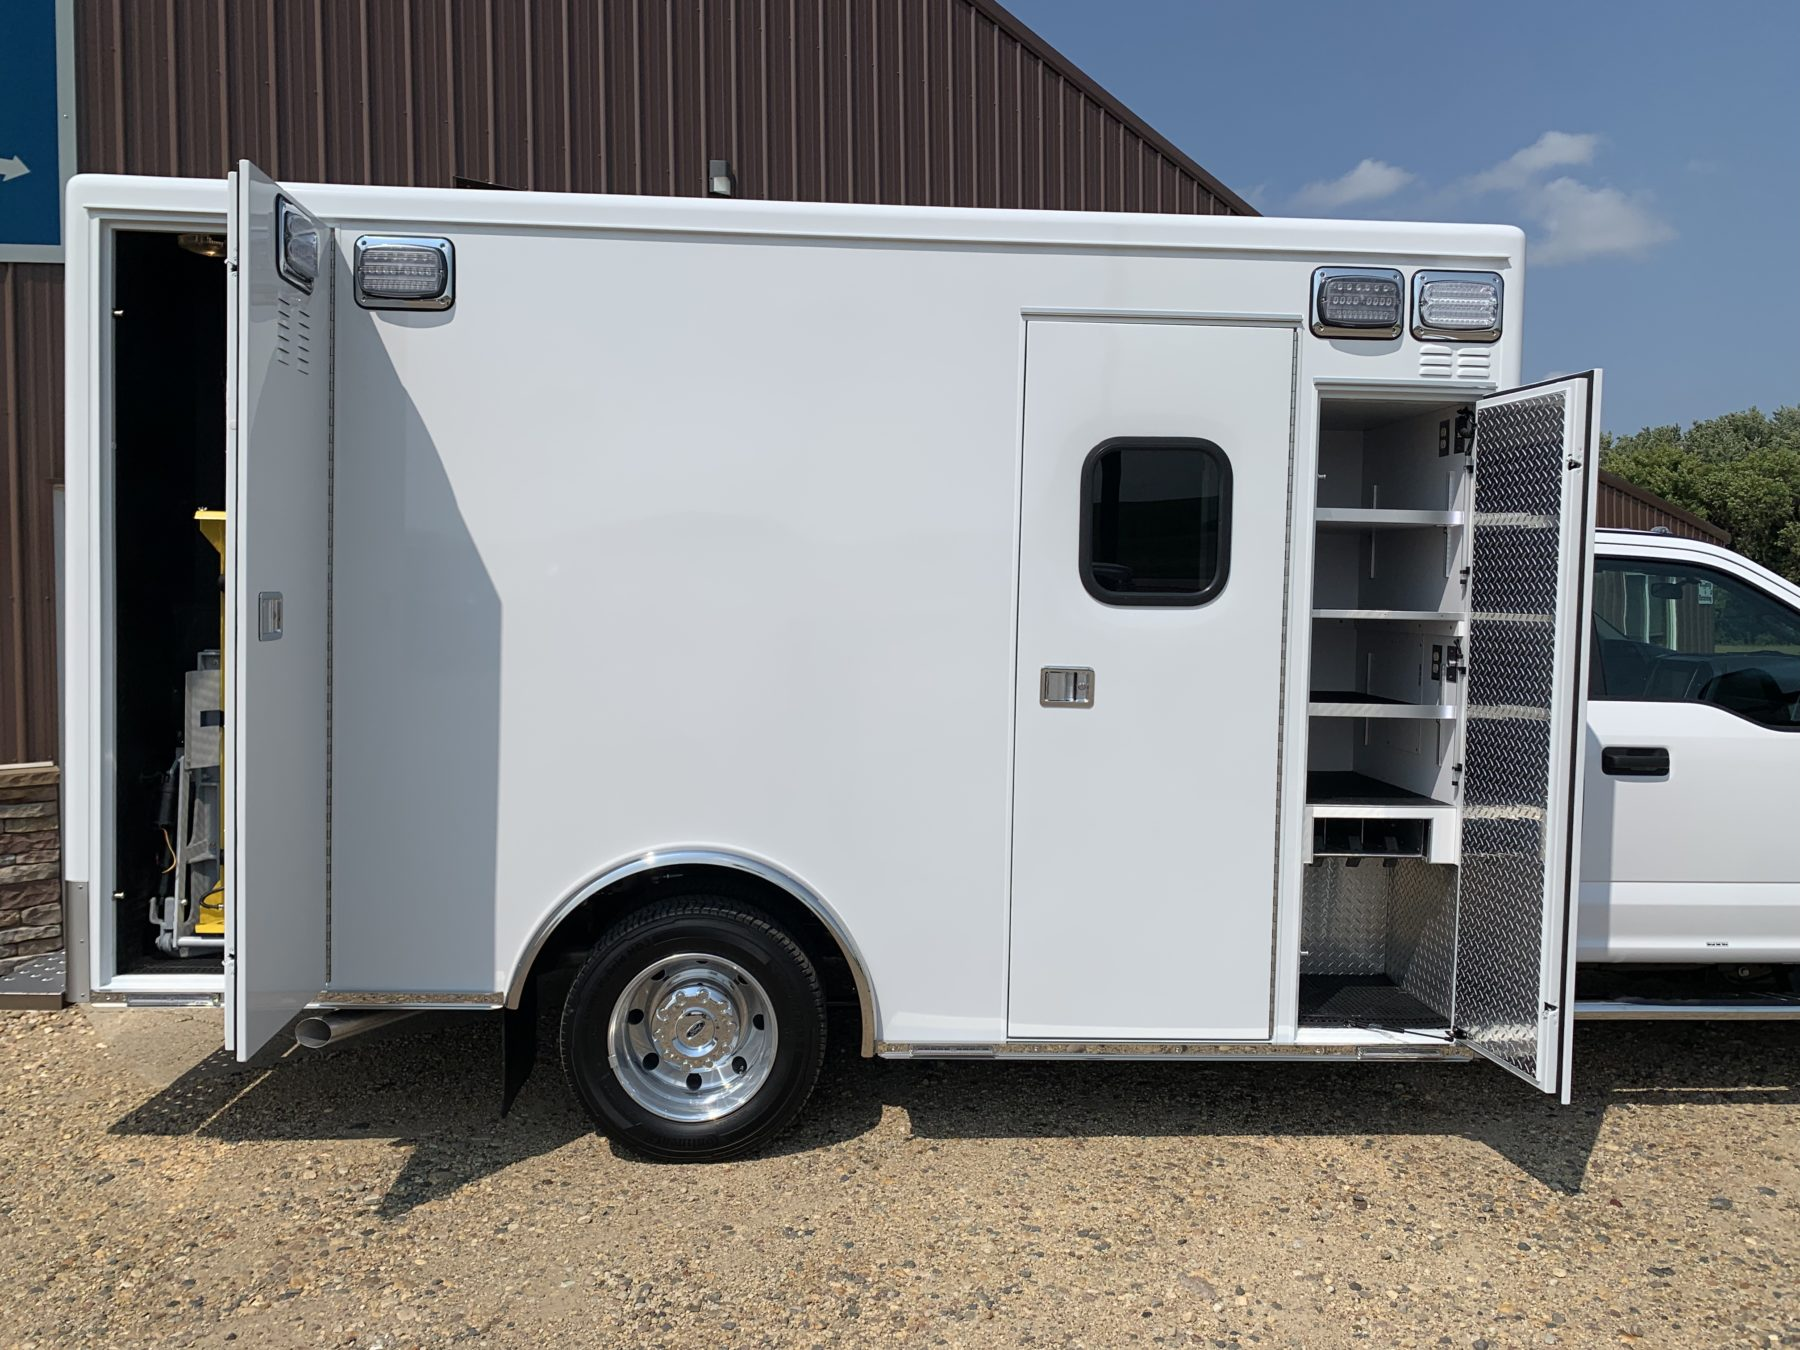 2021 Ford F550 4x4 Heavy Duty Ambulance For Sale – Picture 9